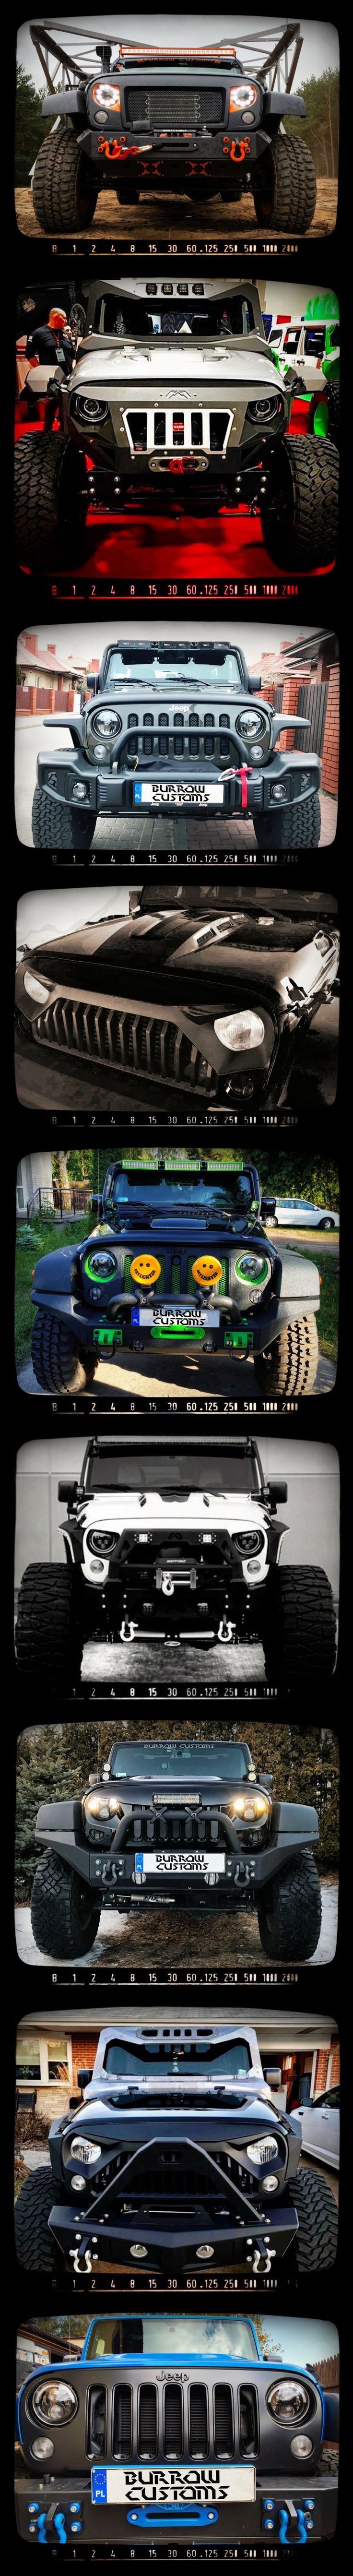 Jeep Wrangler front. The same car but...